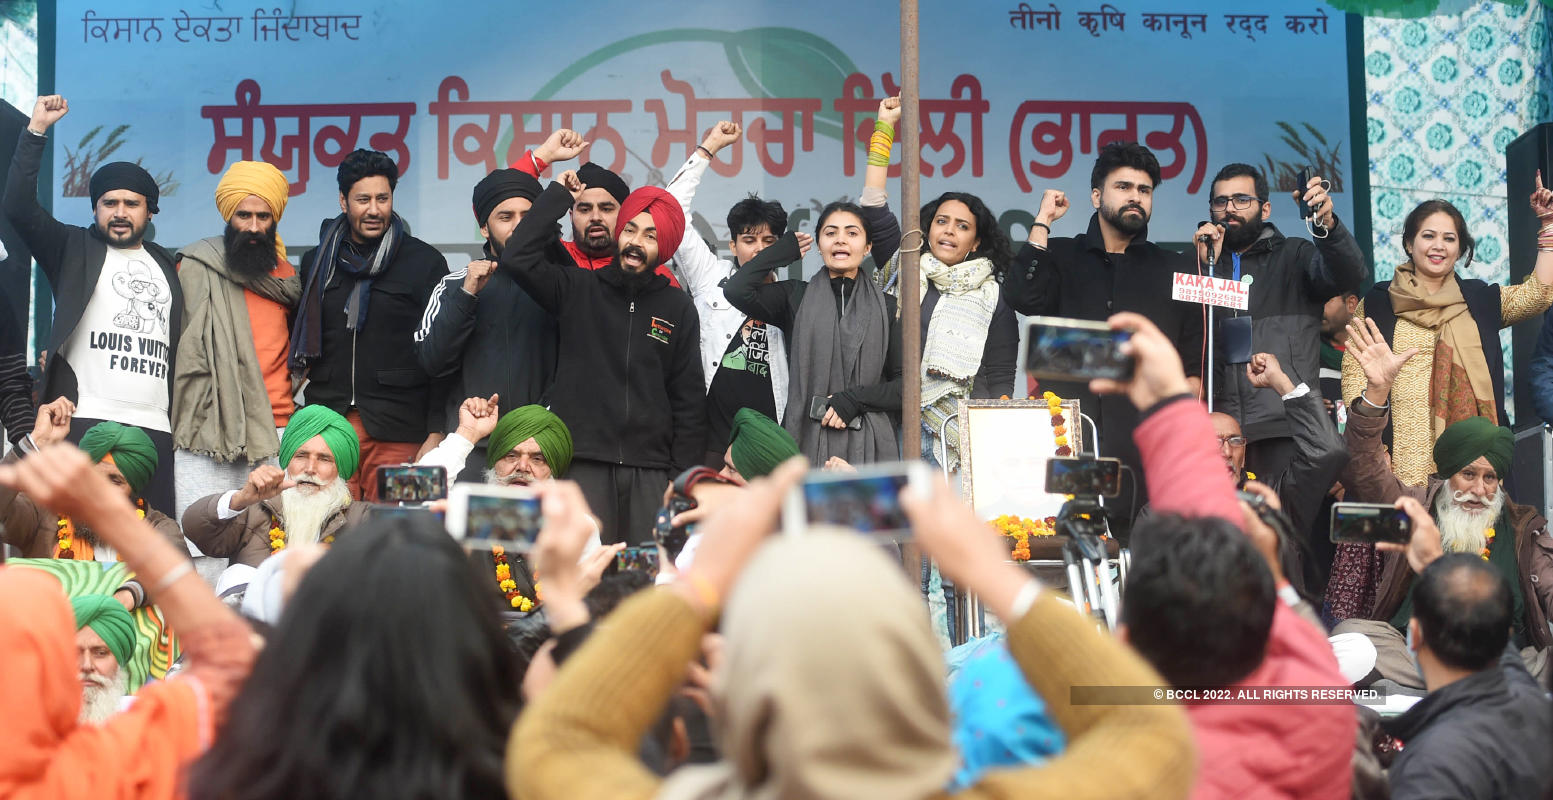 Swara Bhasker, Rabbi Shergill & others take part in concert to support farmers at Tikri border